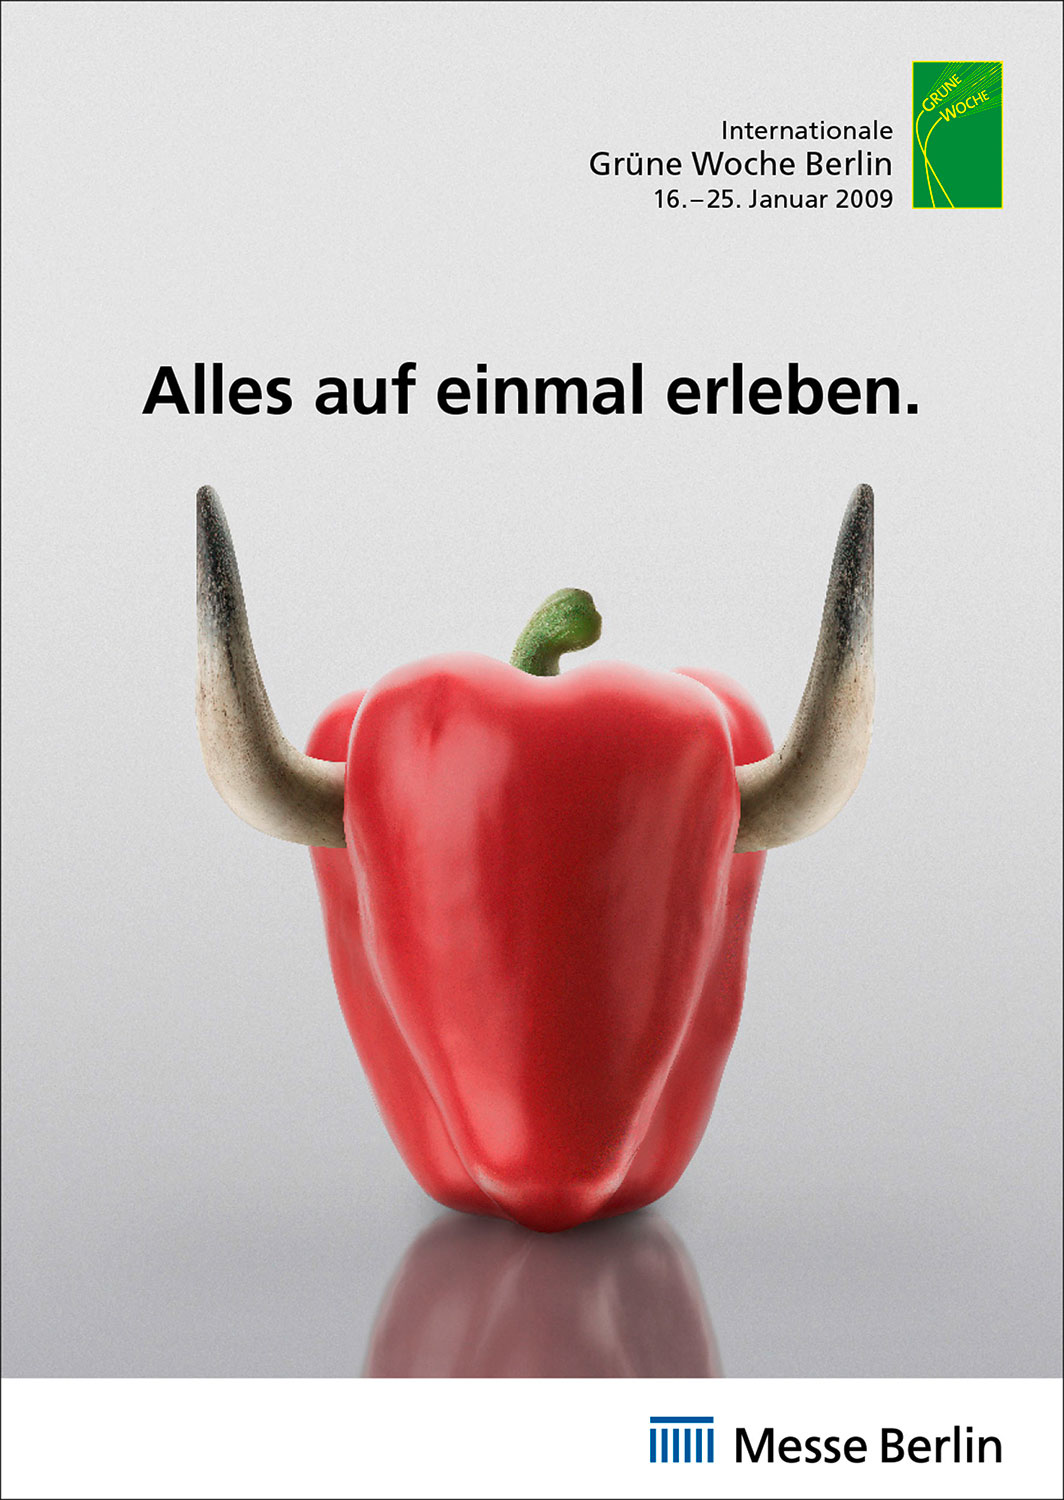 Advertising Photographie Still Life Composing Internationale Grüne Woche Messe Paprika Hörner Erleben Idris Kolodziej